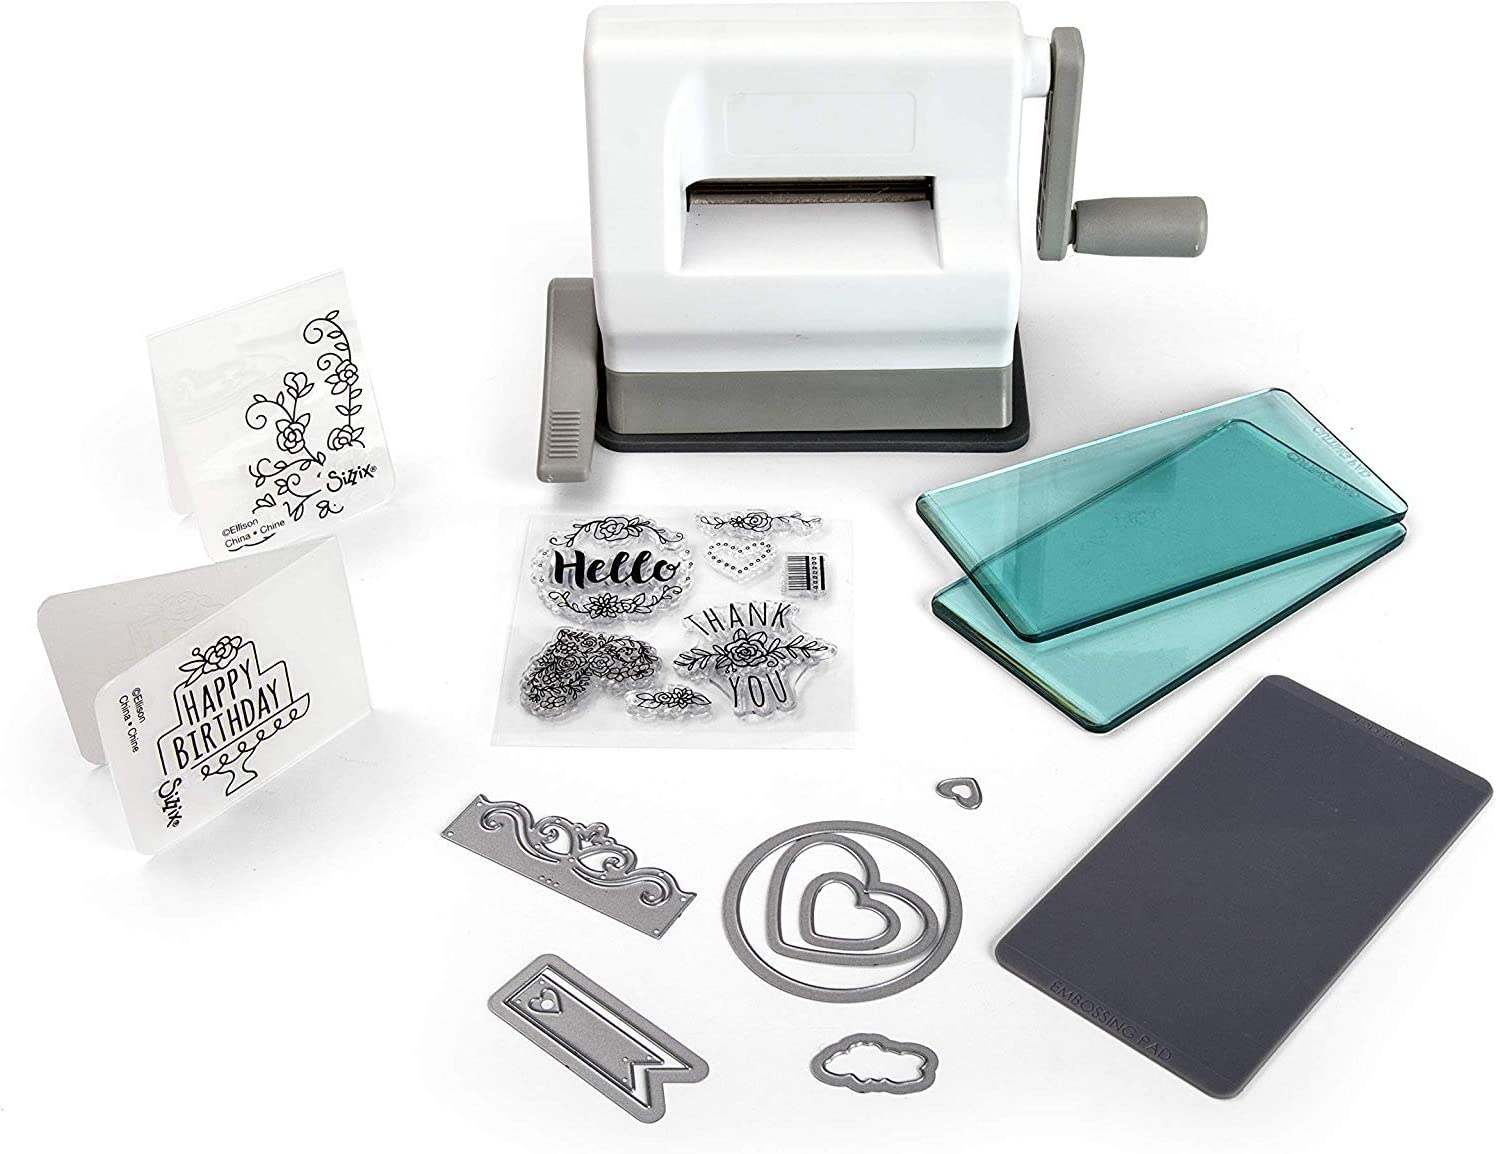 Sizzix Sidekick Manual Die Cutting and Embossing Machine 661770 with Starter Kit, 2.5 Inch (6.35 cm) Opening, 2.5 Image